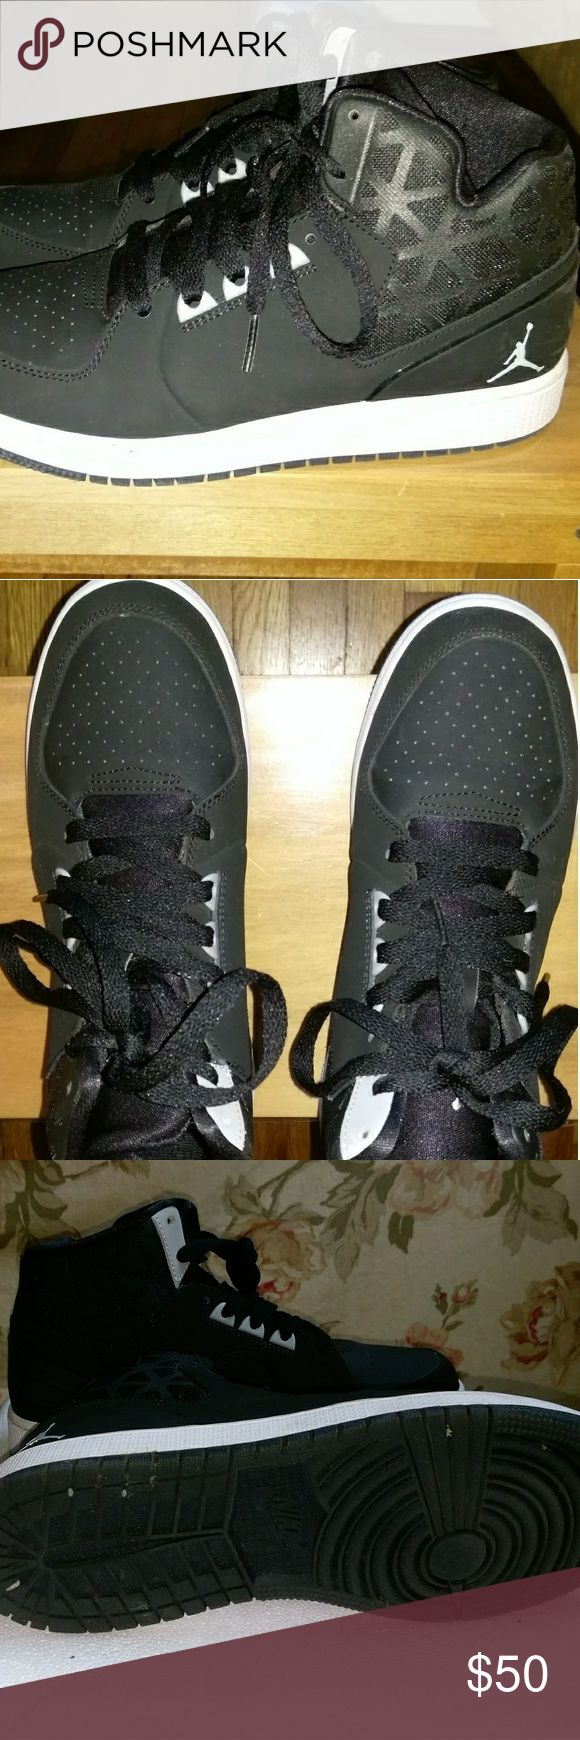 !Authentic! NIKE Air Jordan1 Retro Hi BOYS size 7Y Nike Boys Air Jordan 1 Retro High OG BG  Style Name: Air Jordan 1 Retro High OG BG .  Color: Black/White.  Condition: Pre-owned. #mint condition as shown in pics. 100% Authentic.  ###smoke and pet free home Air Jordan Shoes Sneakers